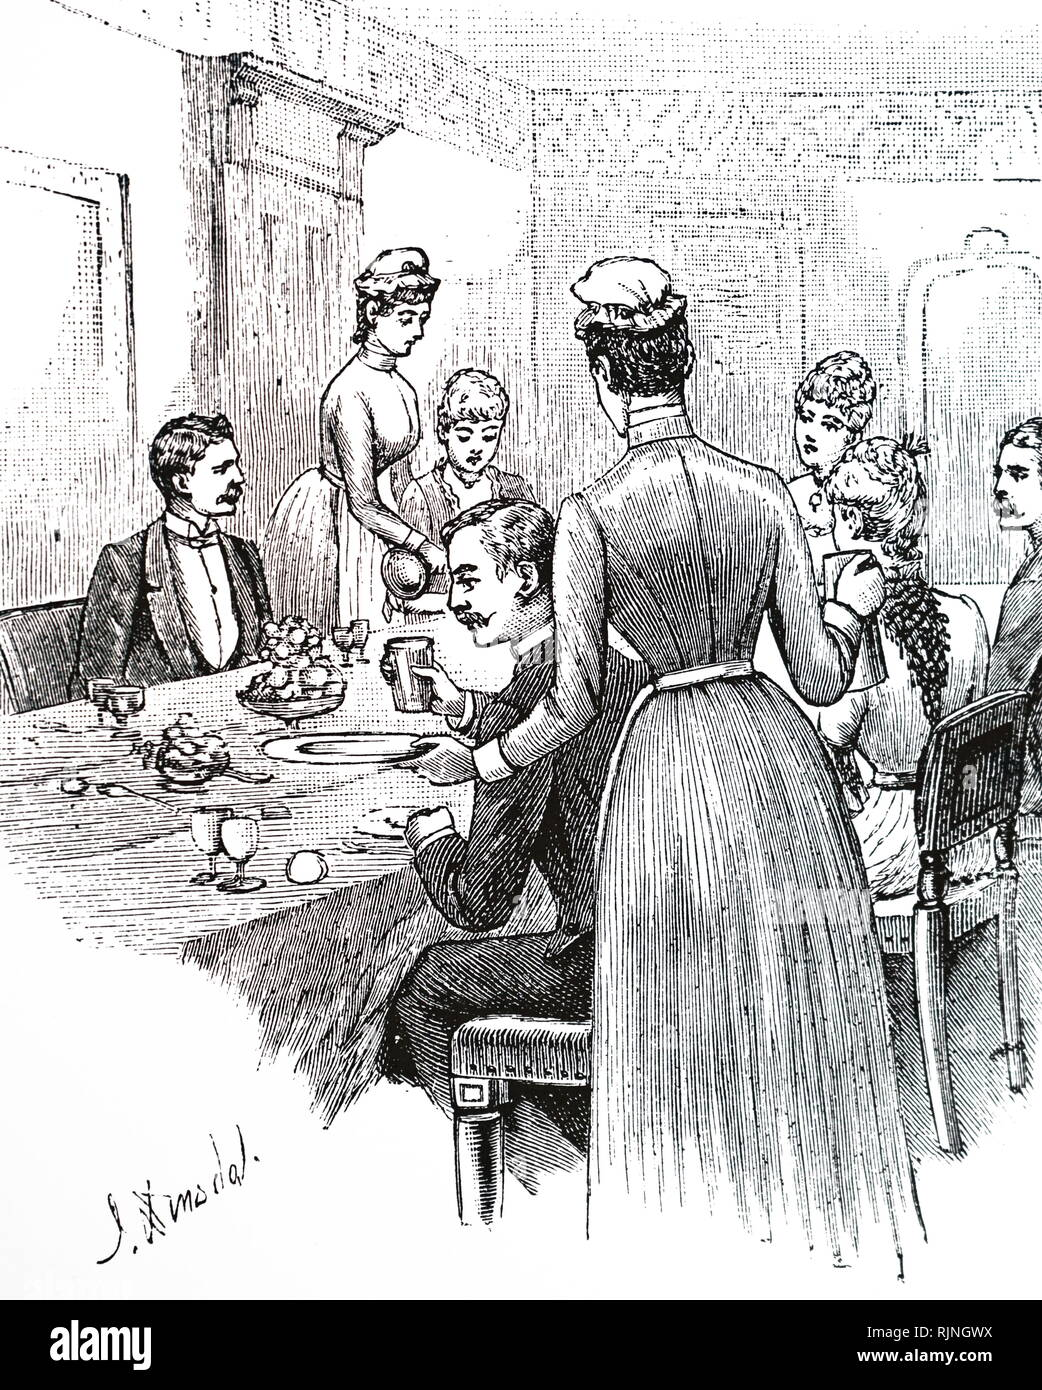 An engraving depicting parlour maids serving at table. Dated 20th century - Stock Image